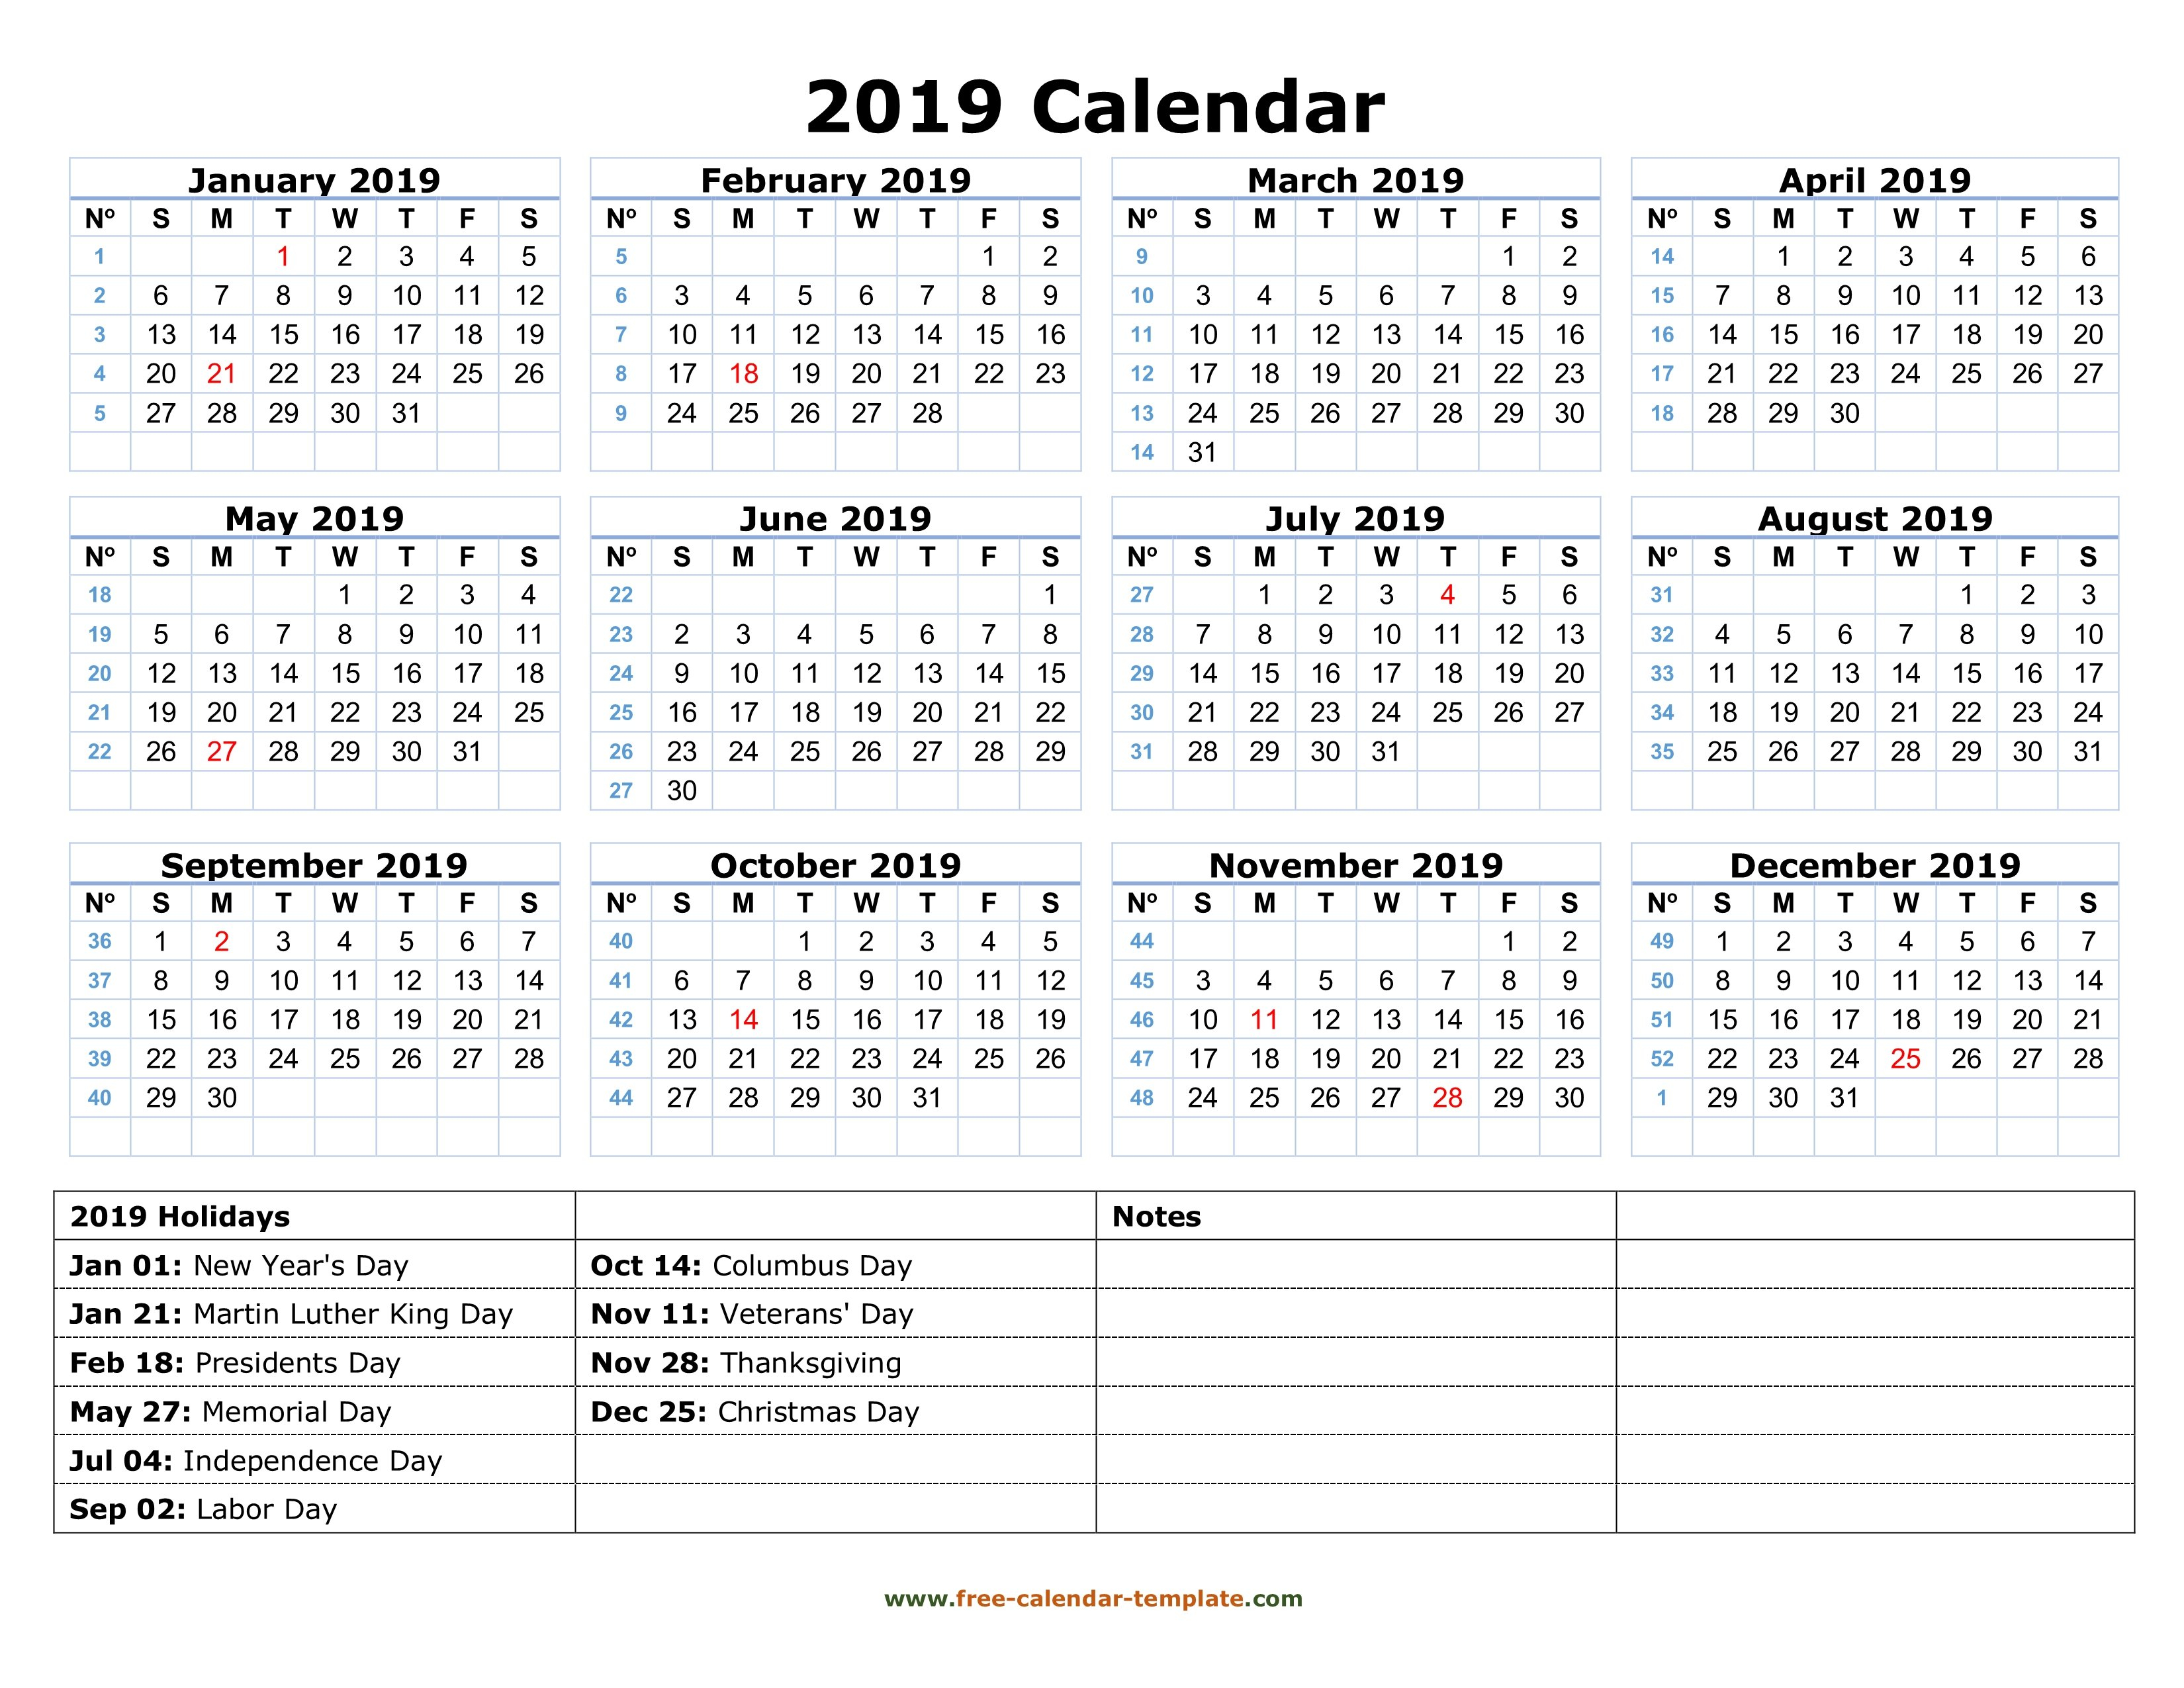 Printable Yearly Calendar 2019 With Us Holidays | Free Calendar Calendar 2019 Year Printable